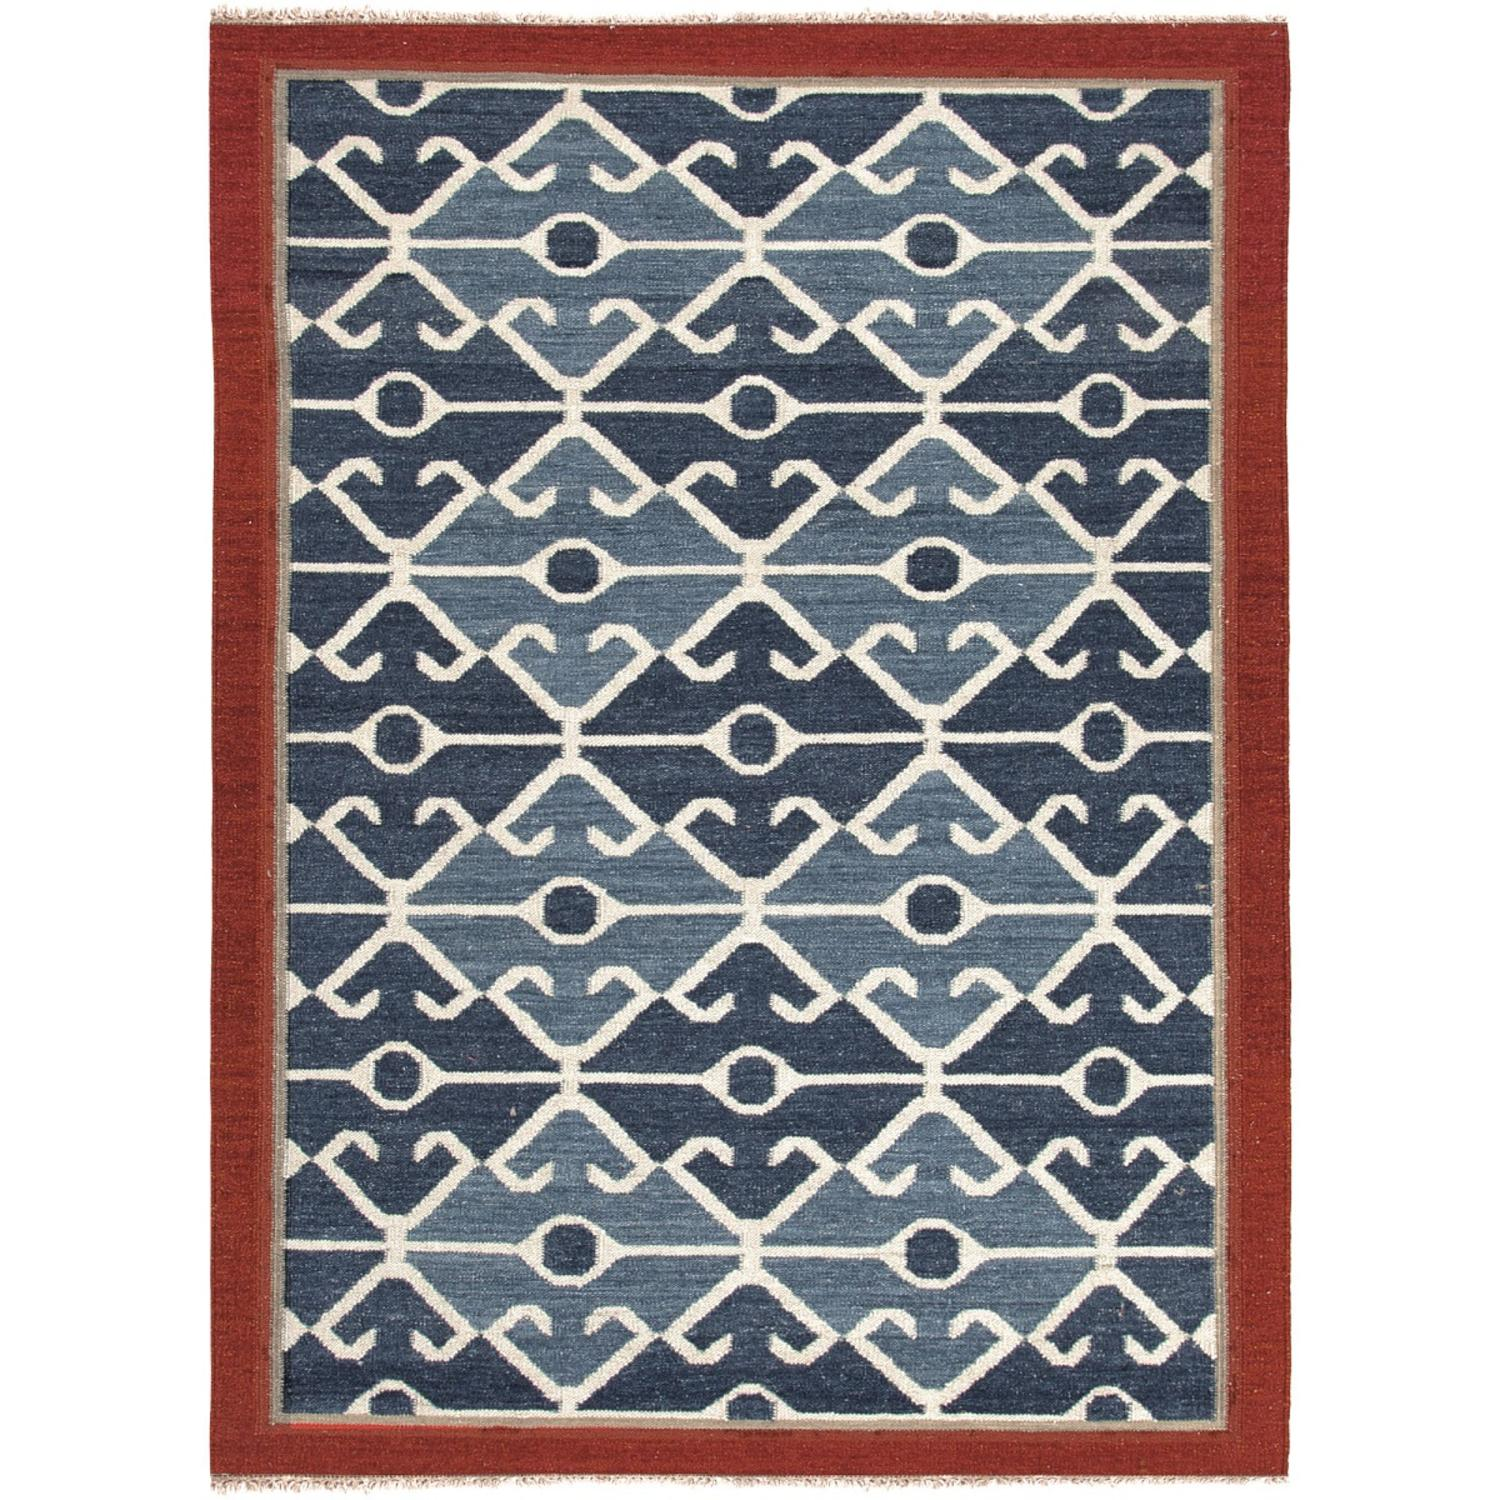 4' x 6' Red, Blue and Gray Sultan Flat Weave Ottoman Hand Woven Wool Area Throw Rug